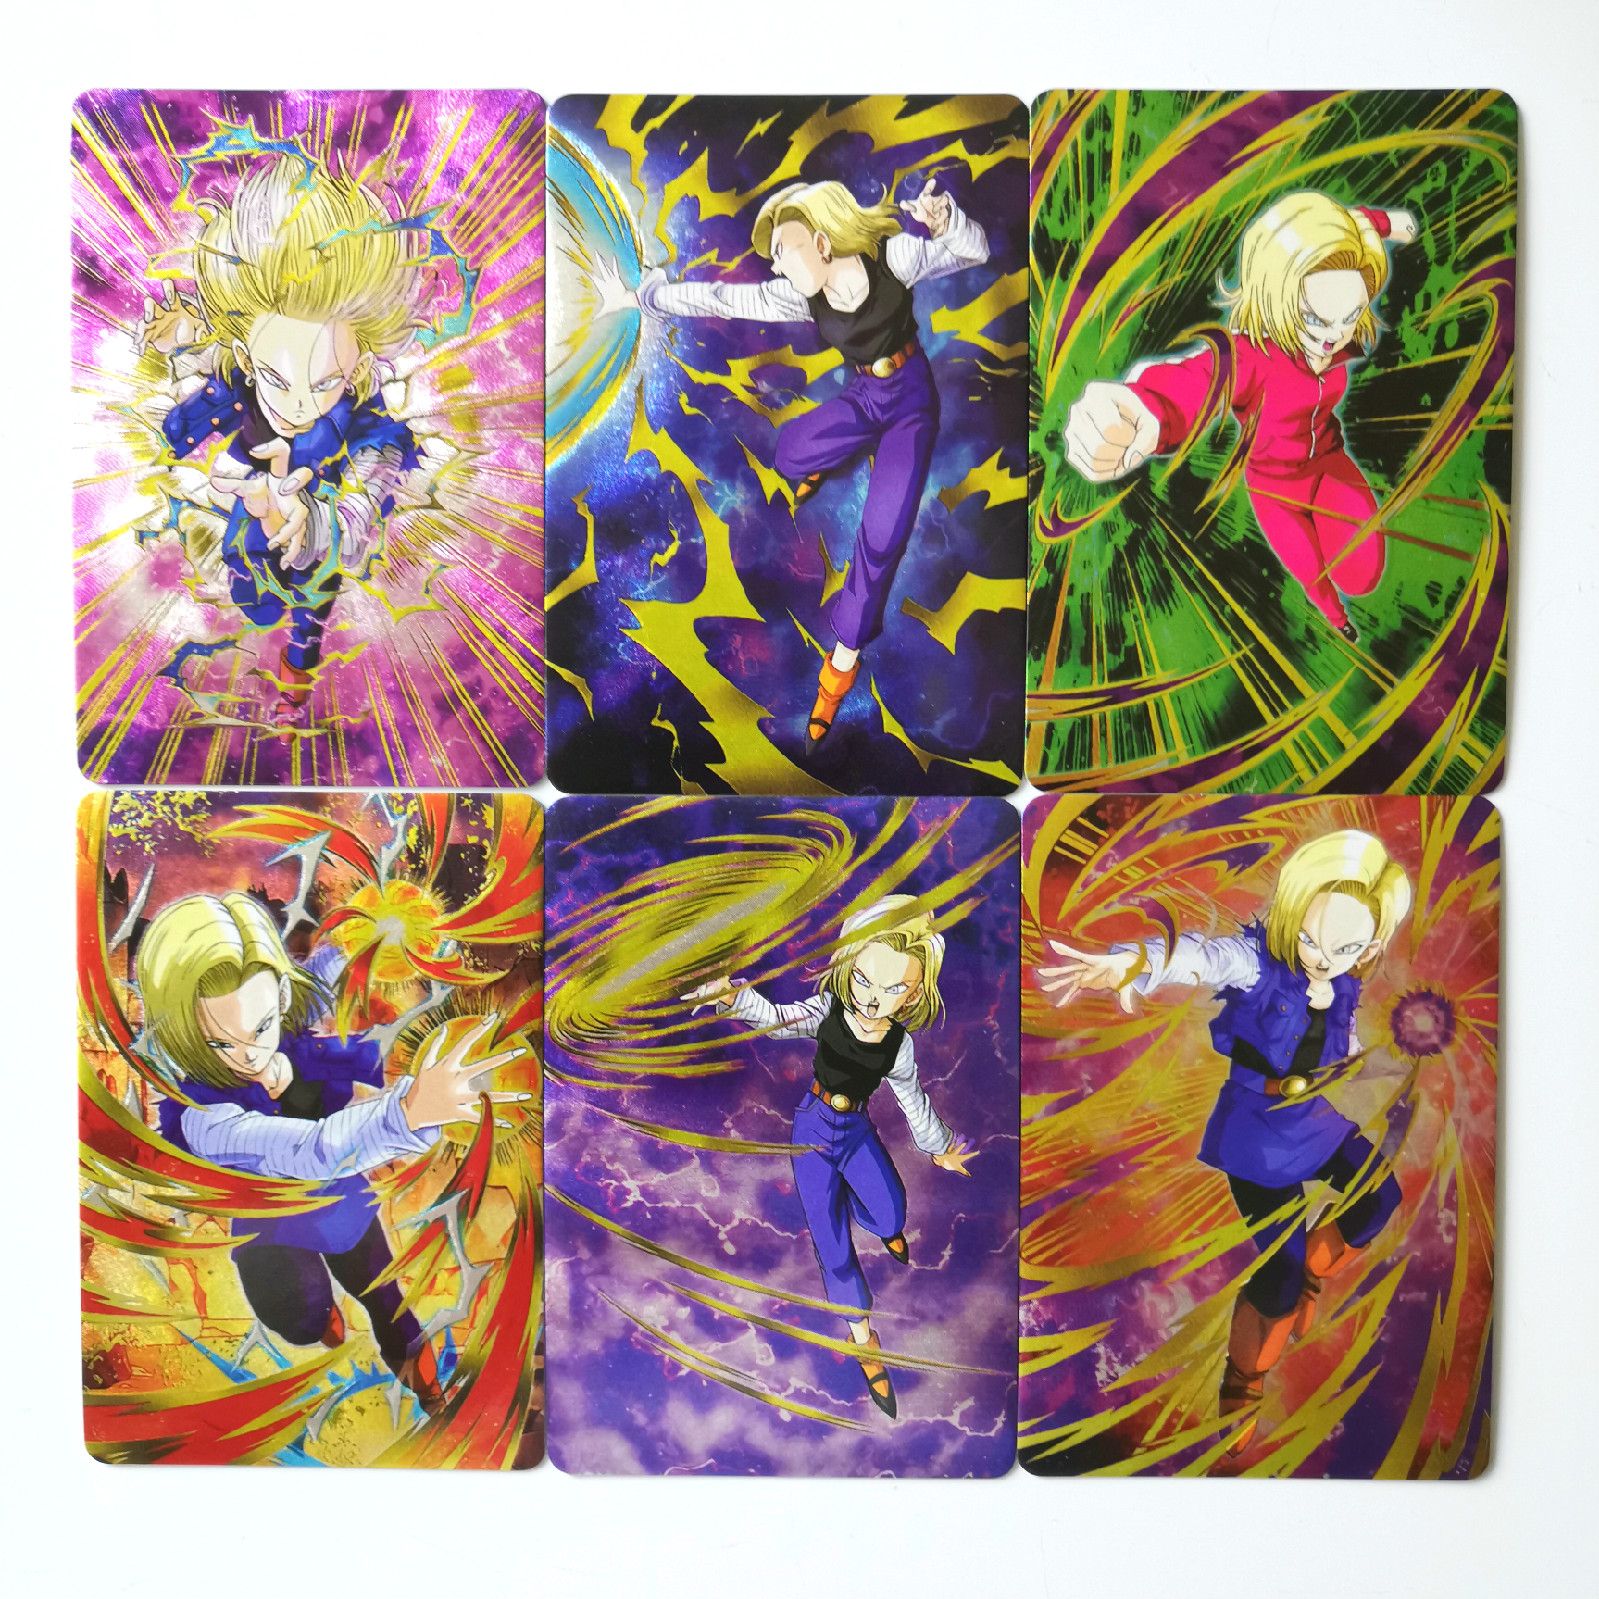 18pcs Super Dragon Ball Z Heroes Battle Card Ultra Instinct Goku Toys Hobbies Hobby Collectibles Game Collection Anime Cards